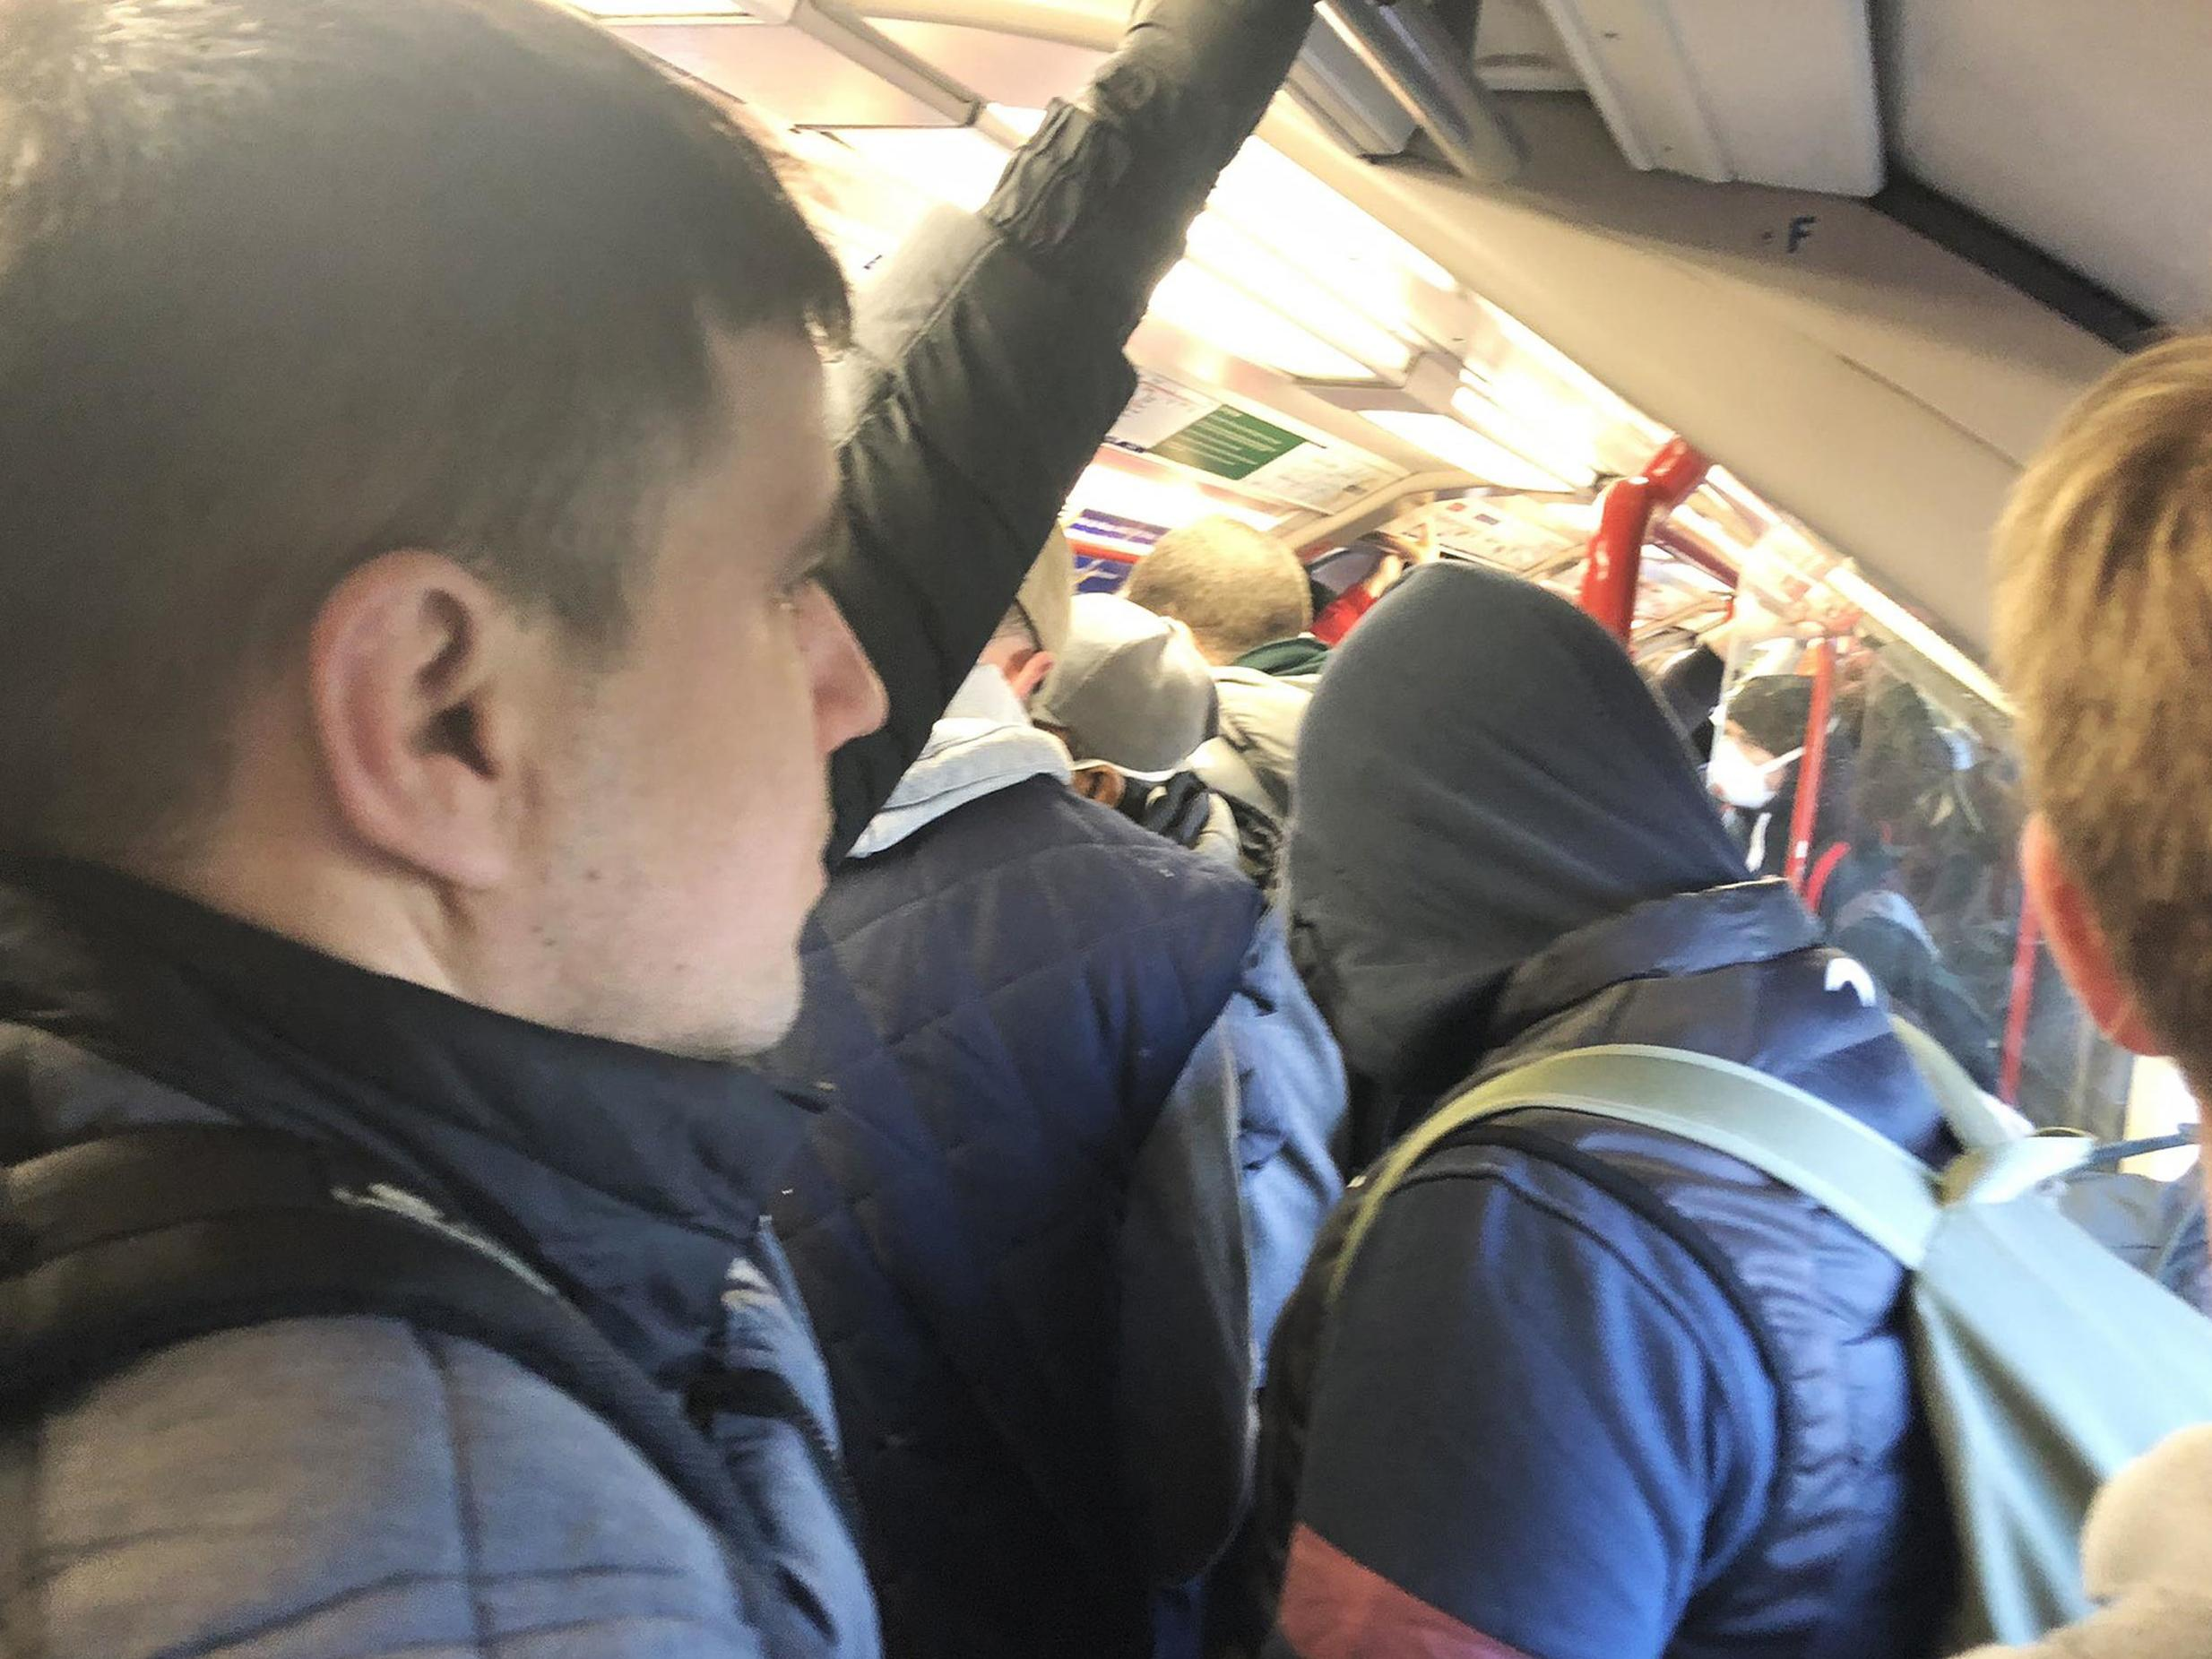 Crowded trains spark fury as people ignore government advice to stay home